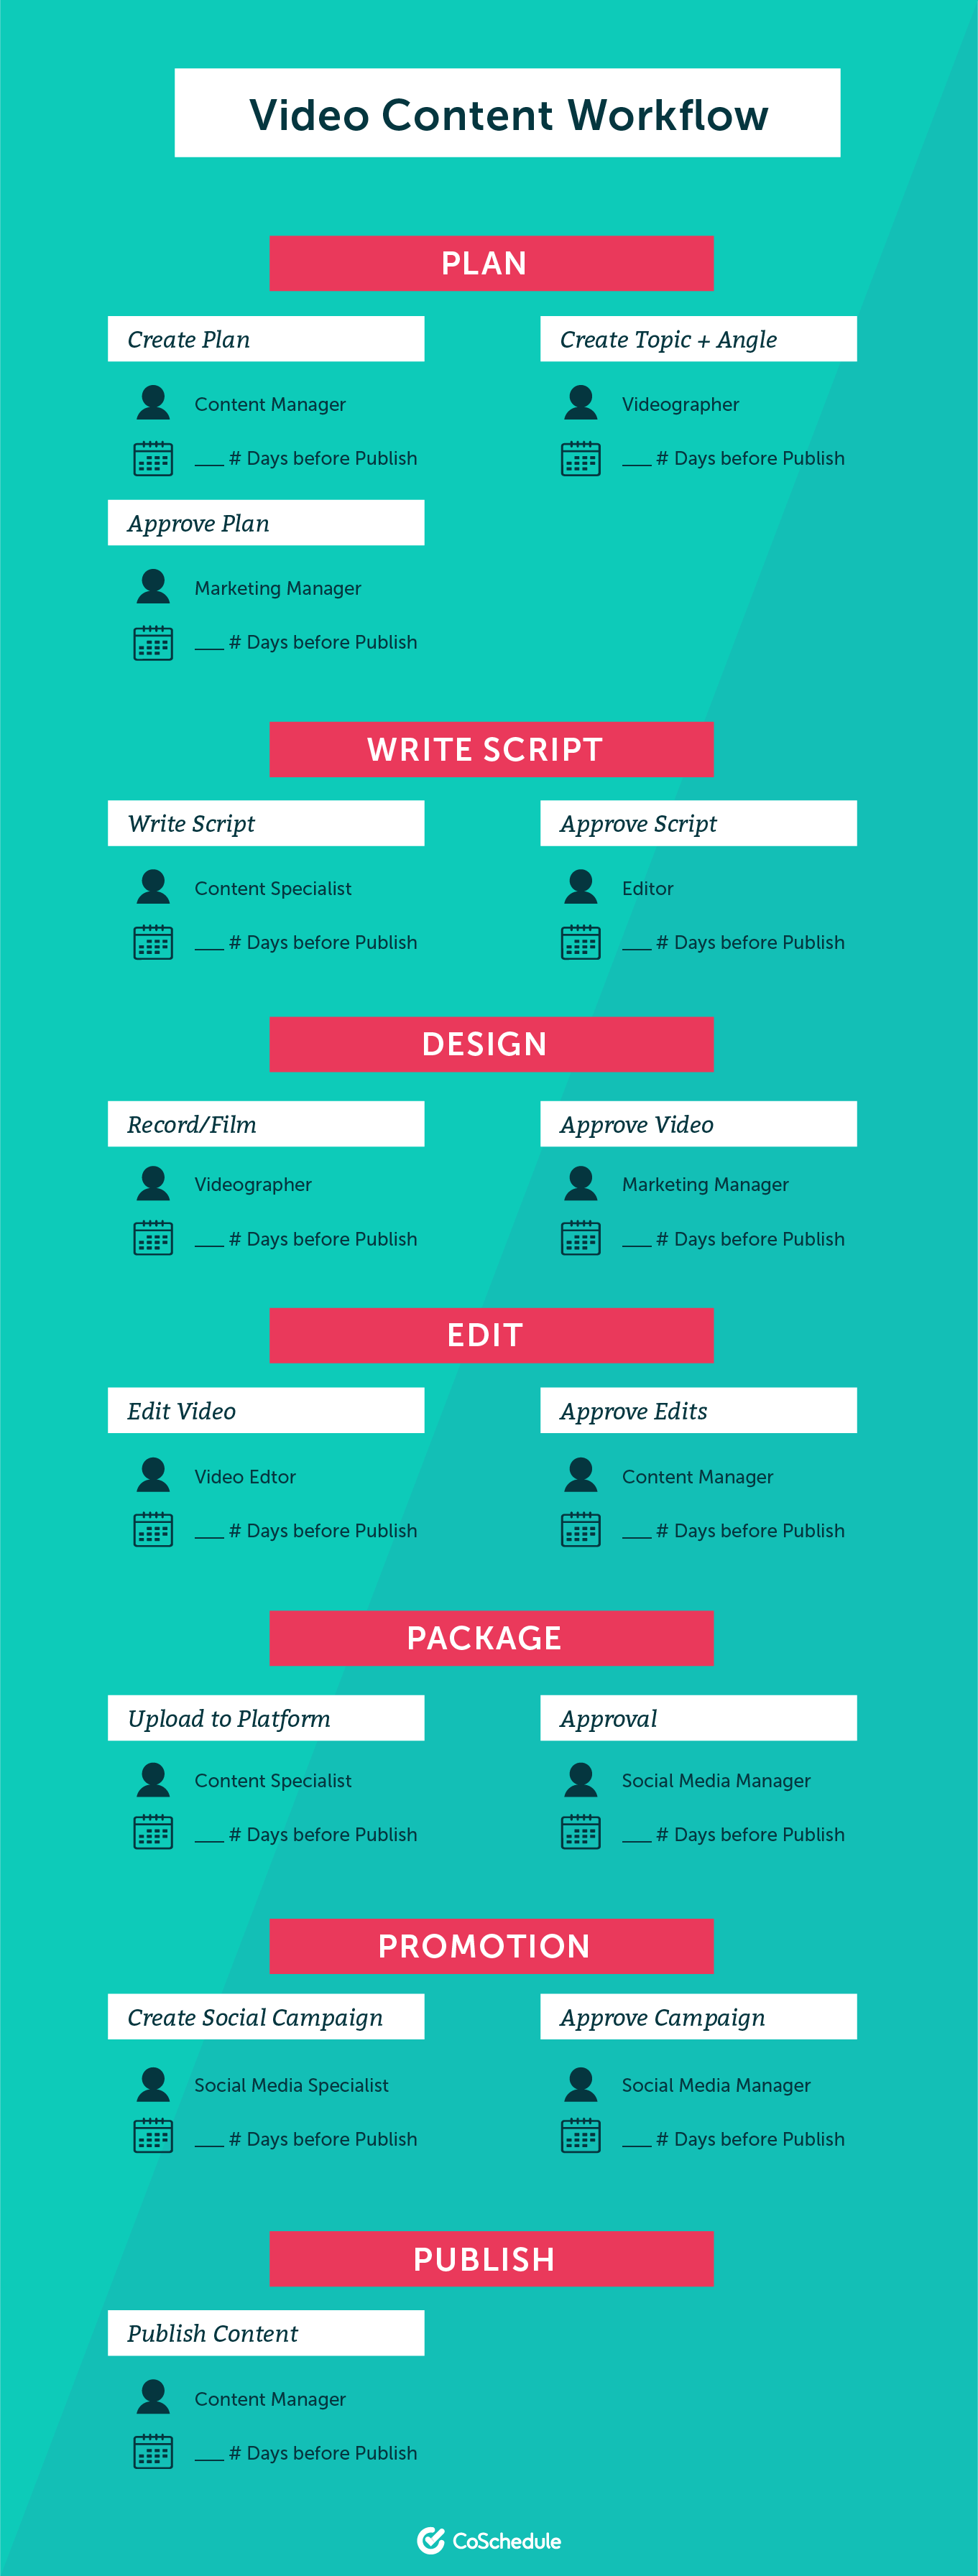 Layout of the video content workflow